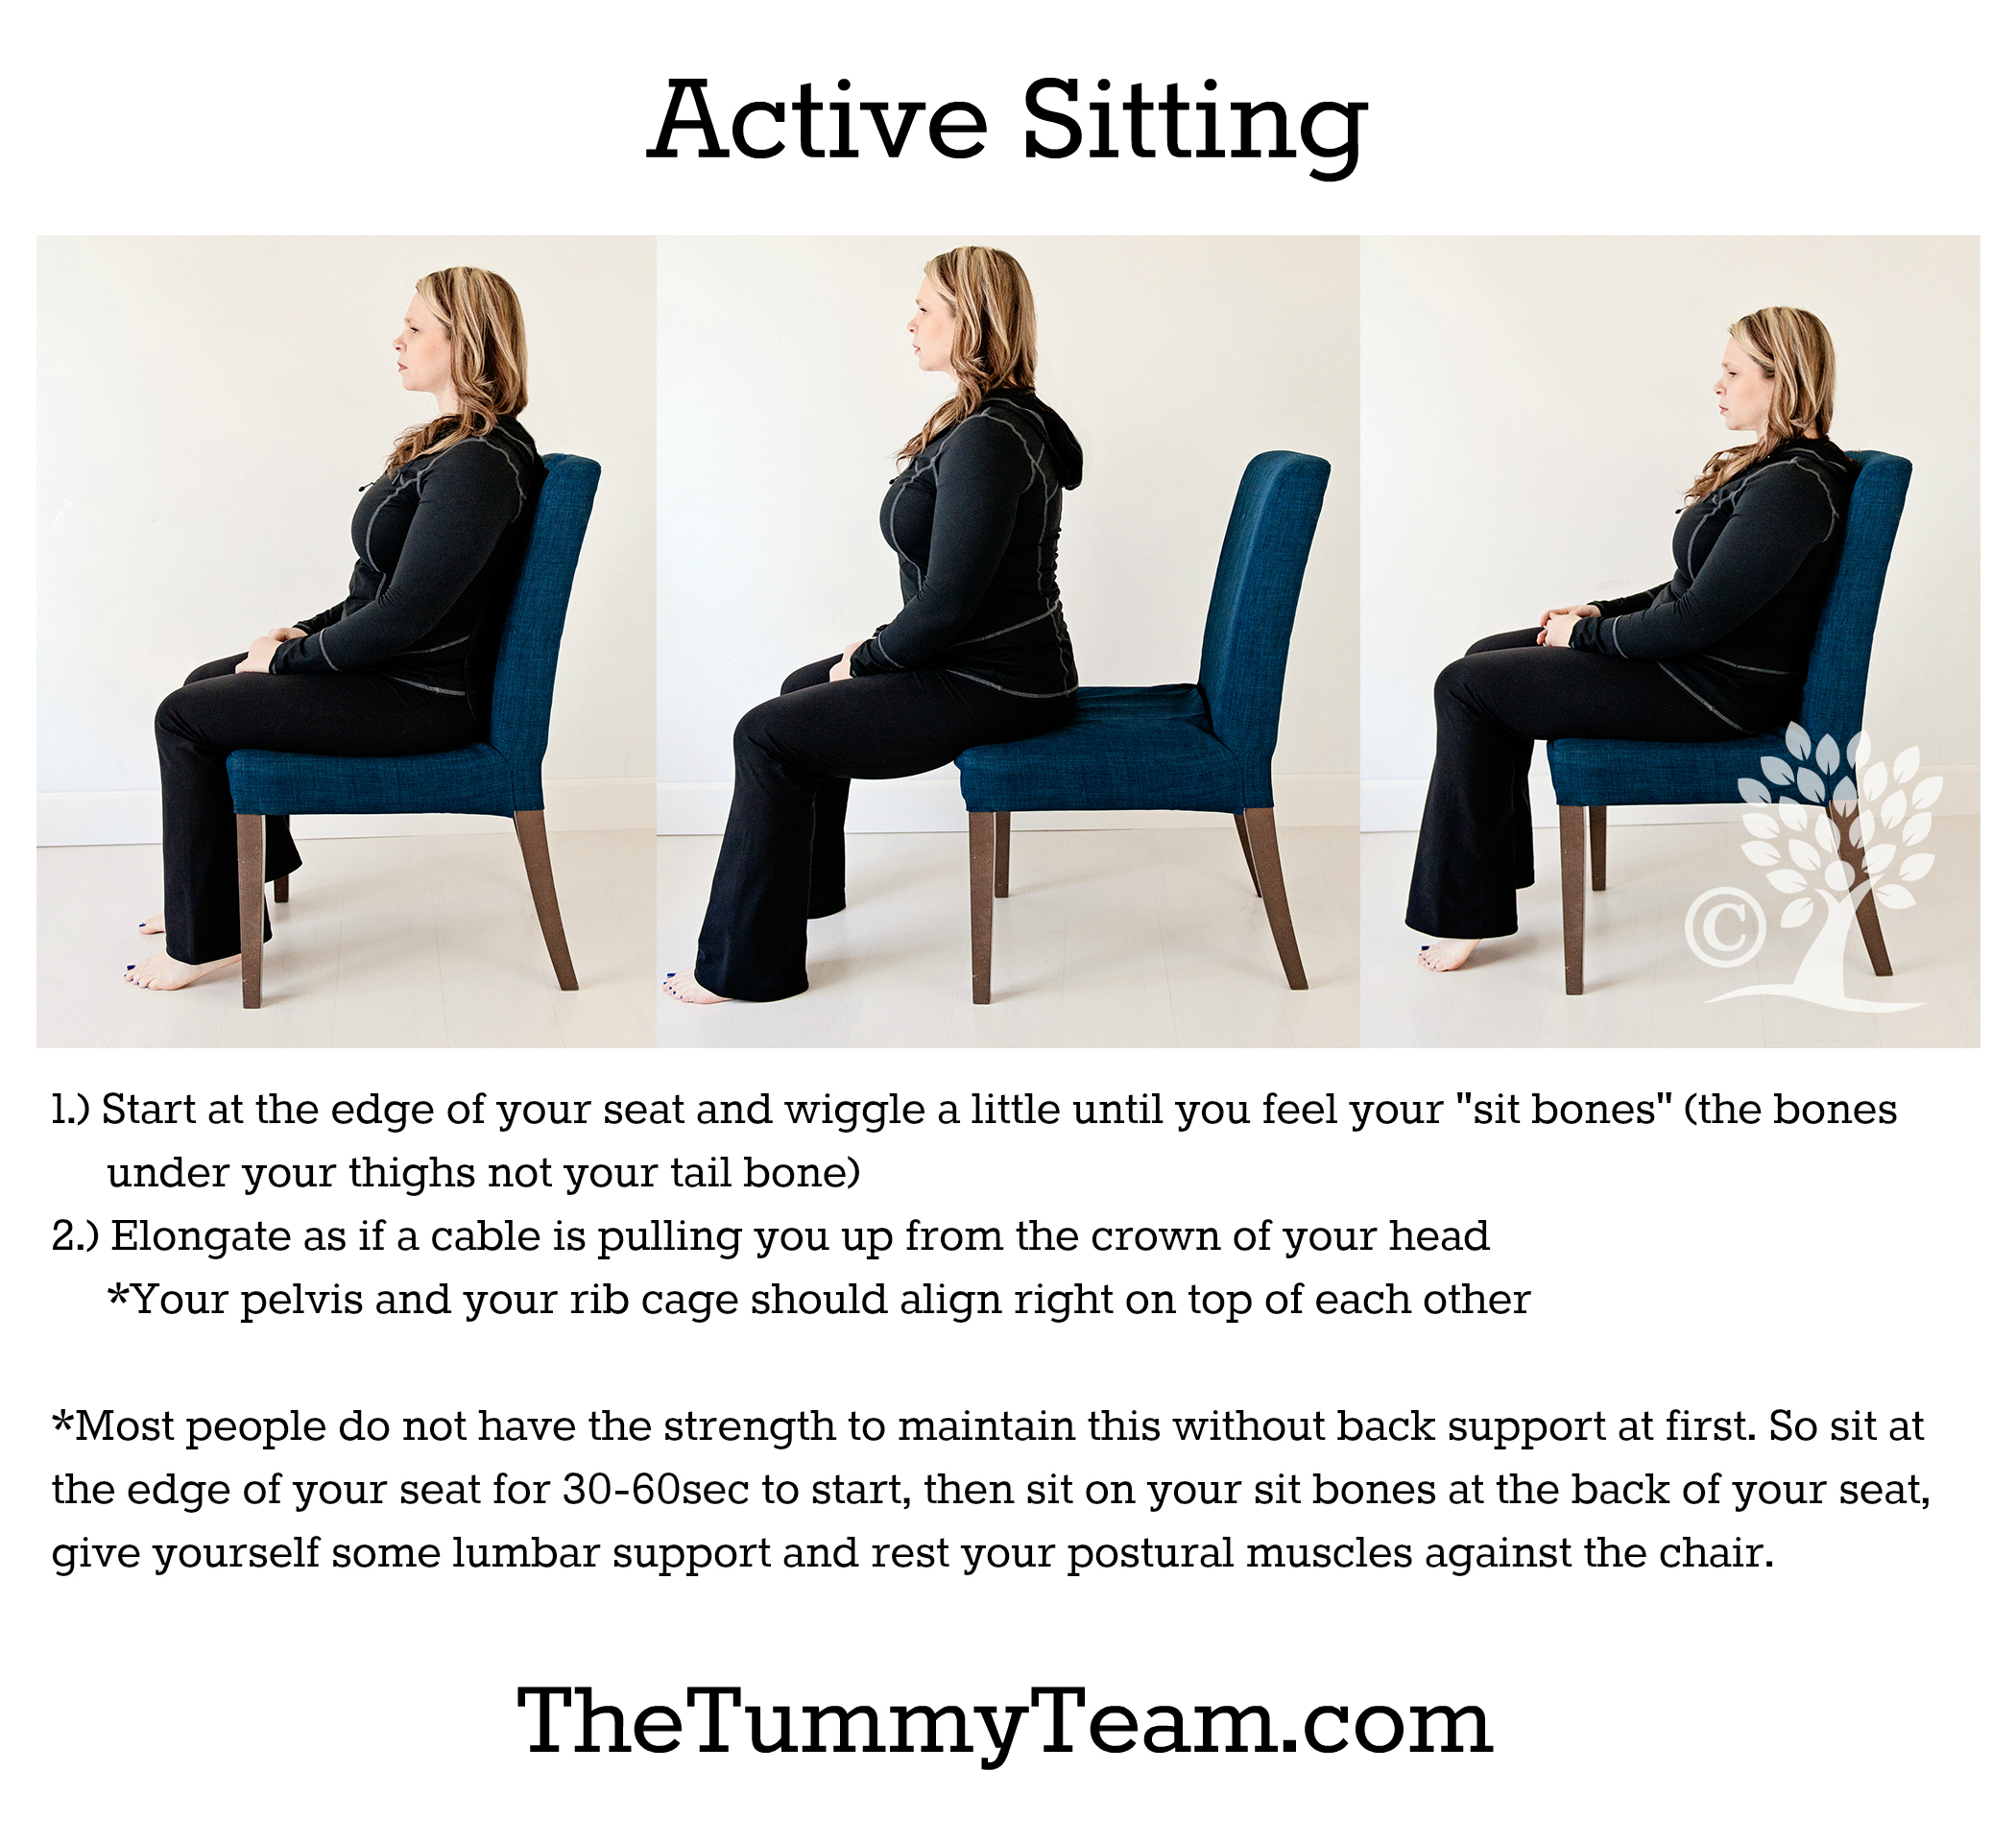 Chair Exercises For Obese Abdominal Exercises While Sitting At Your Desk Hostgarcia